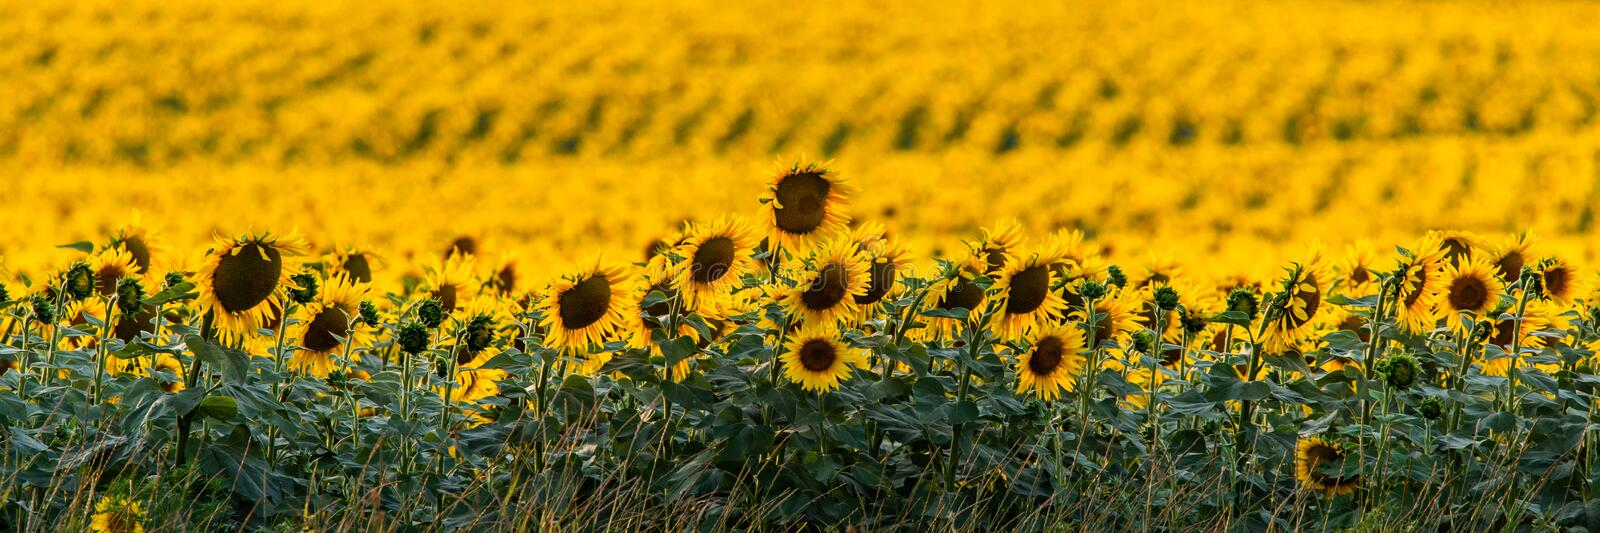 Fields with an infinite sunflower. Agricultural field stock photography